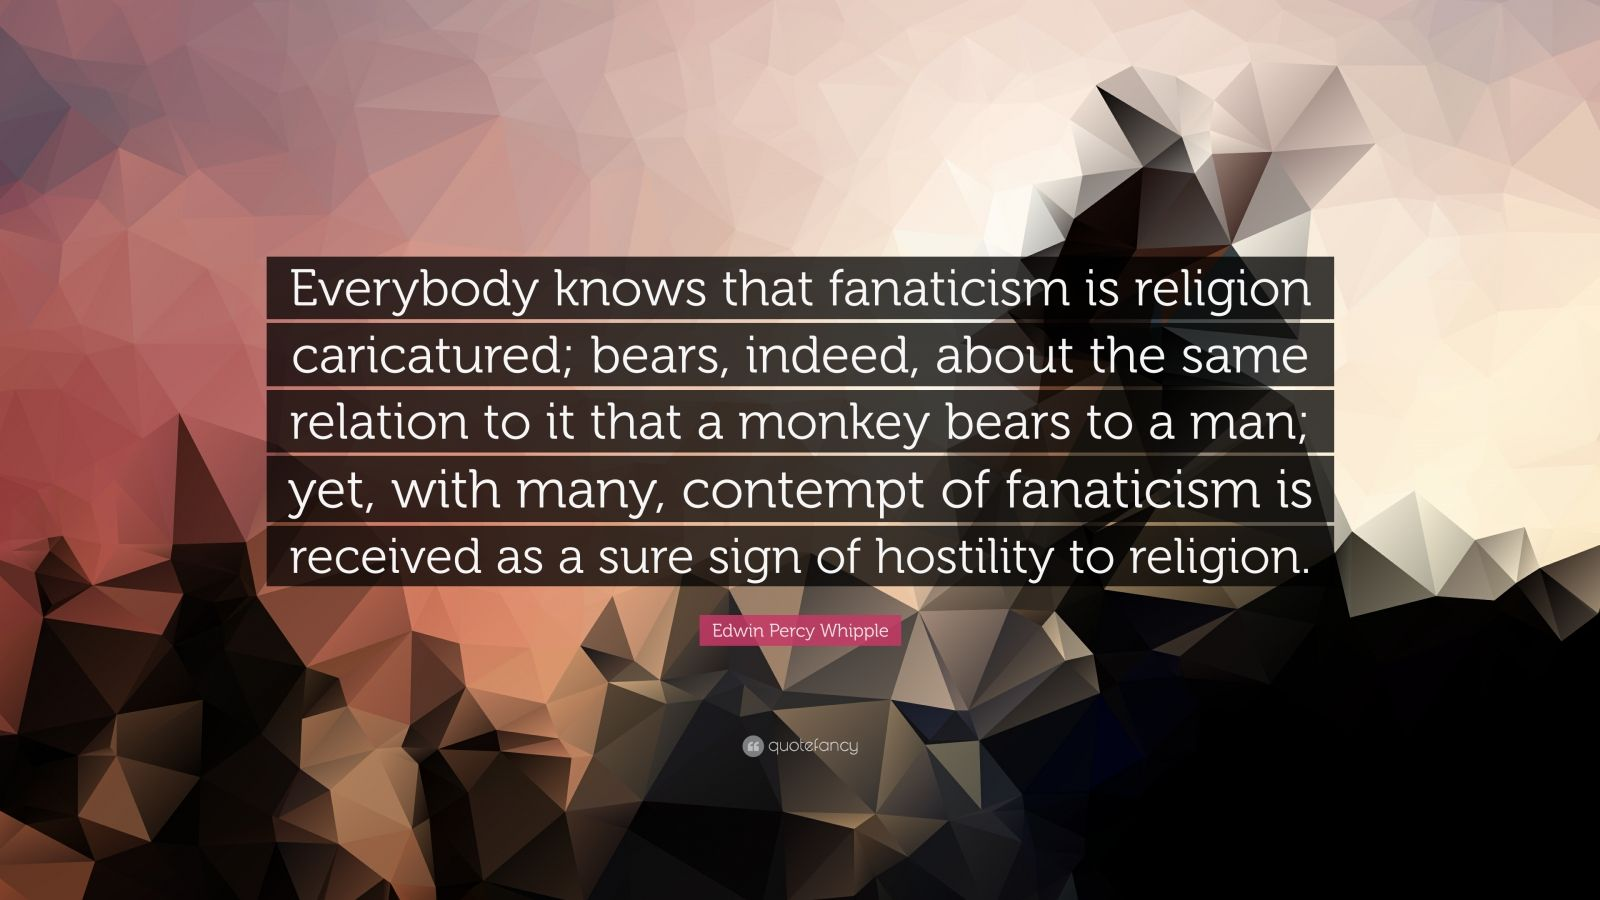 """Edwin Percy Whipple Quote: """"Everybody knows that fanaticism is religion caricatured; bears, indeed, about the same relation to it that a monkey bears to a man; yet, with many, contempt of fanaticism is received as a sure sign of hostility to religion."""""""